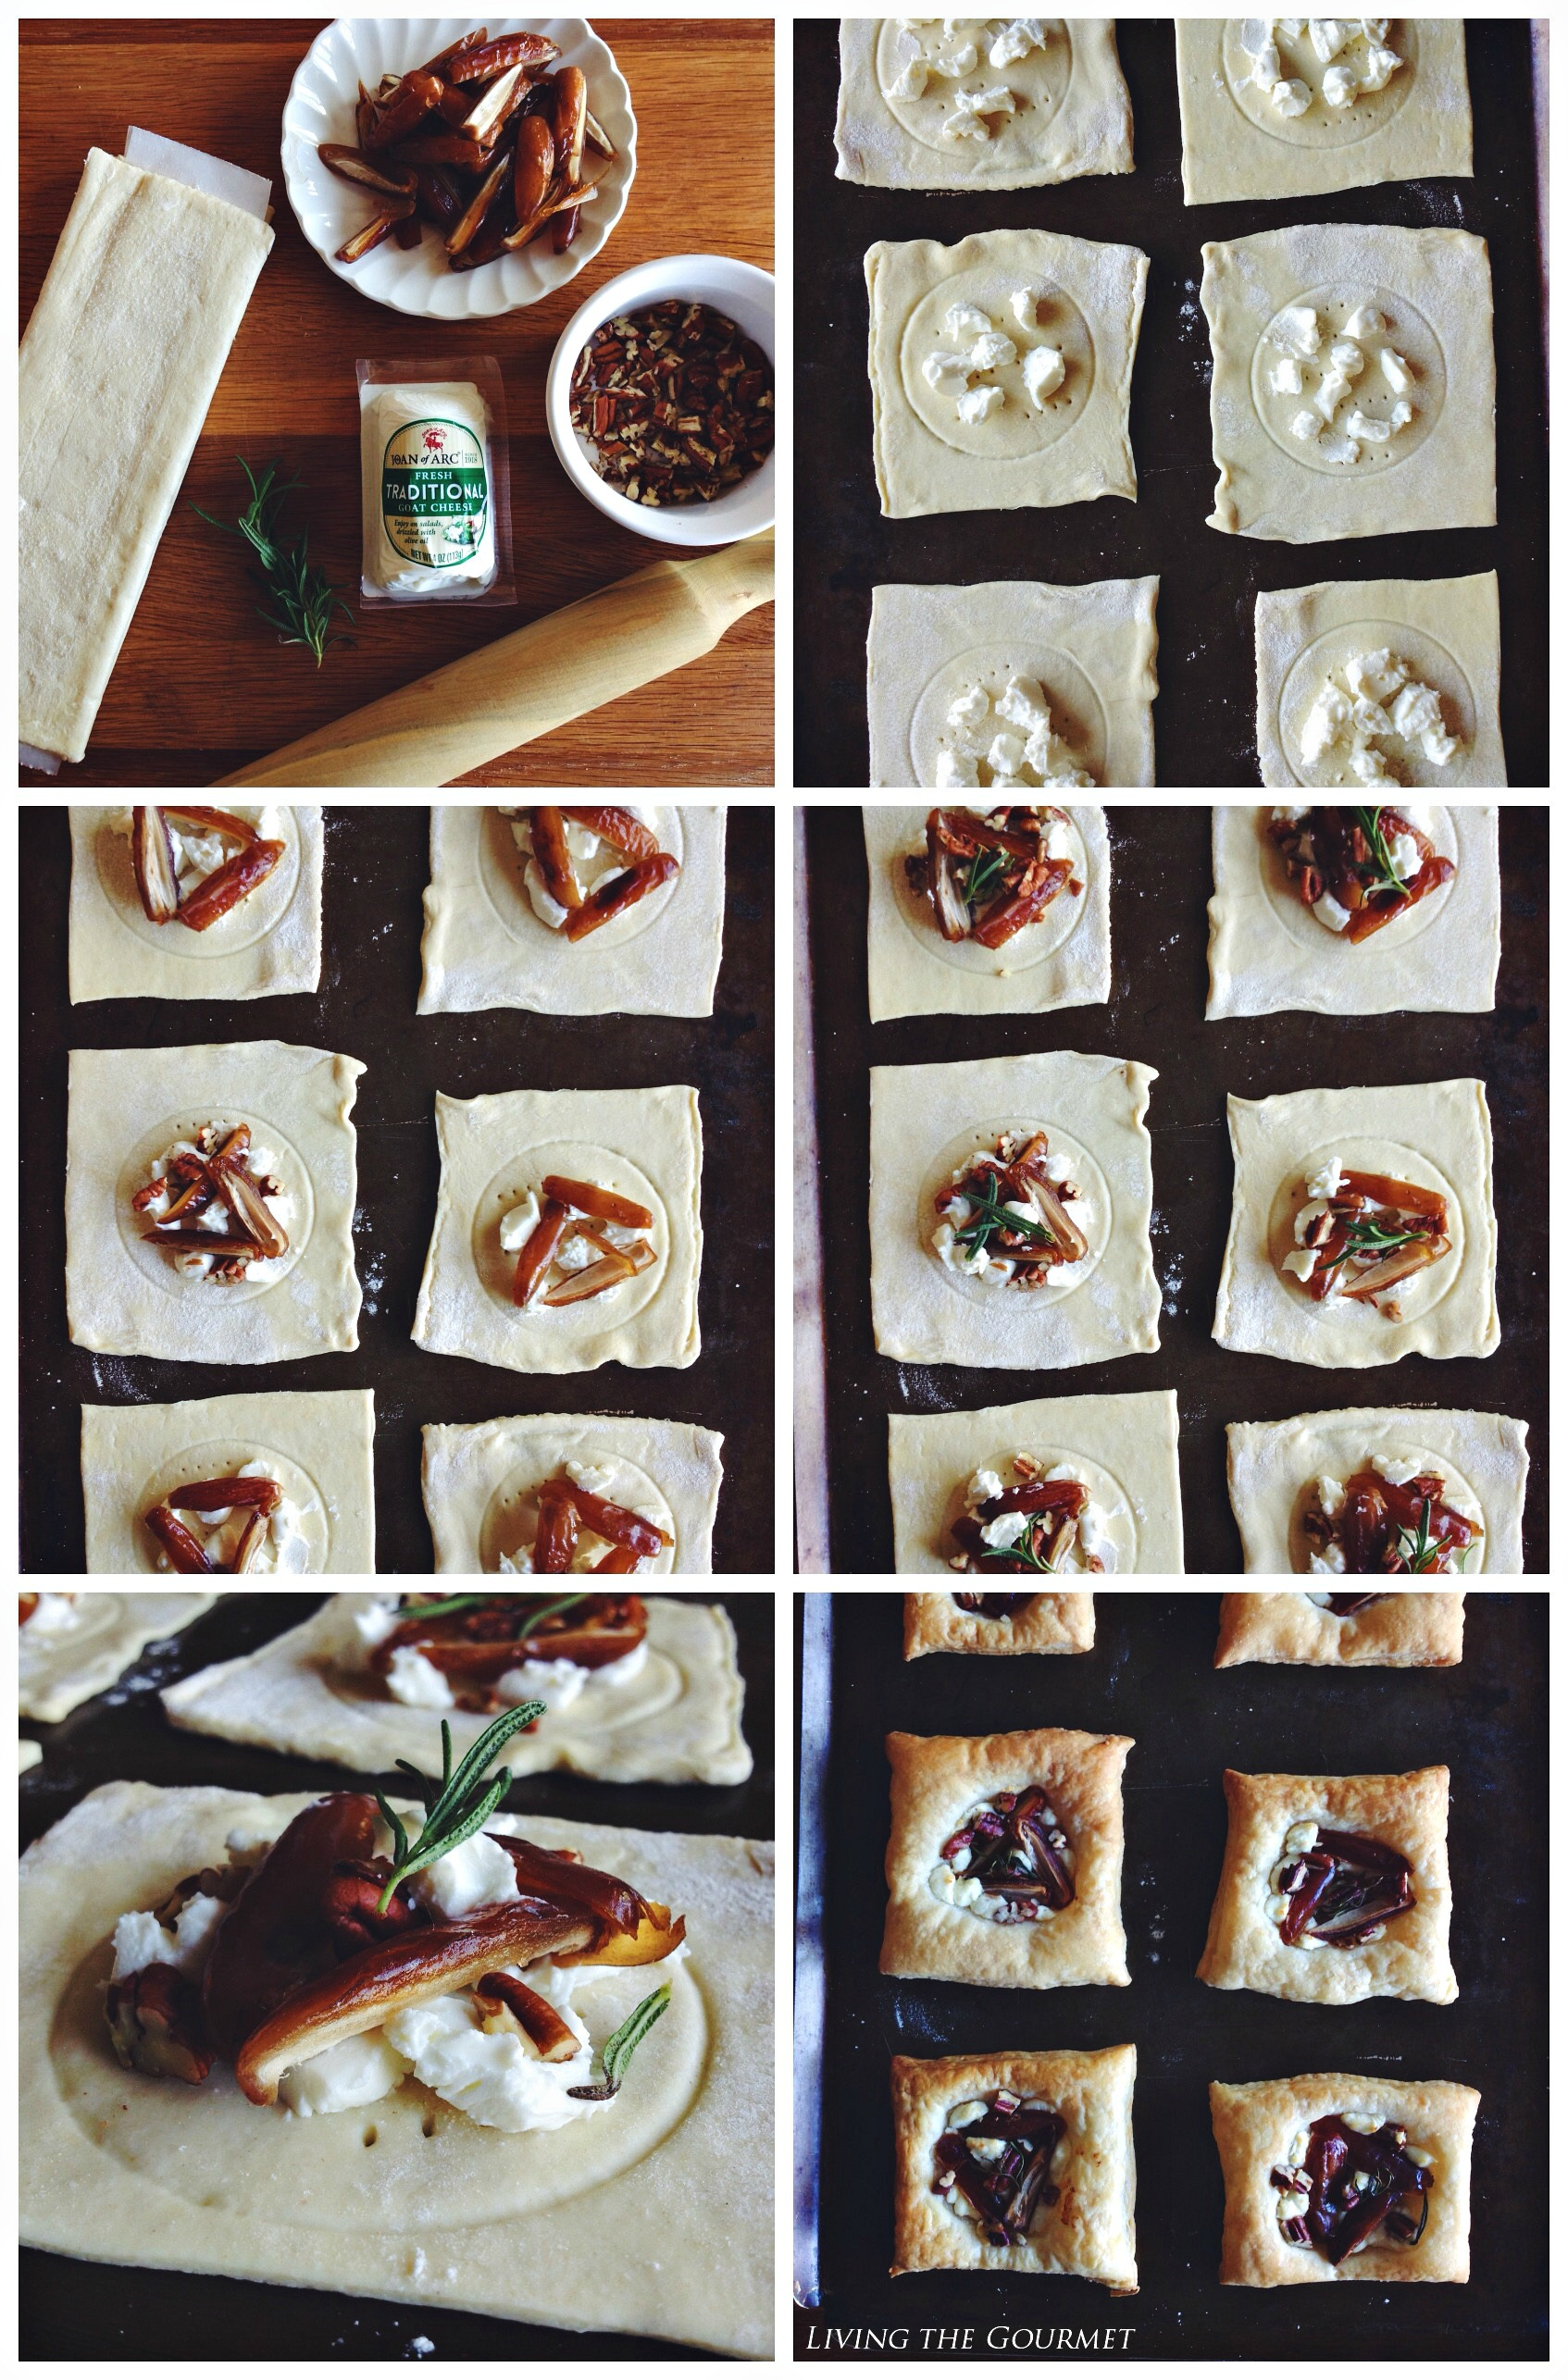 Living the Gourmet: Goat Cheese Tarts & $25 Giveaway